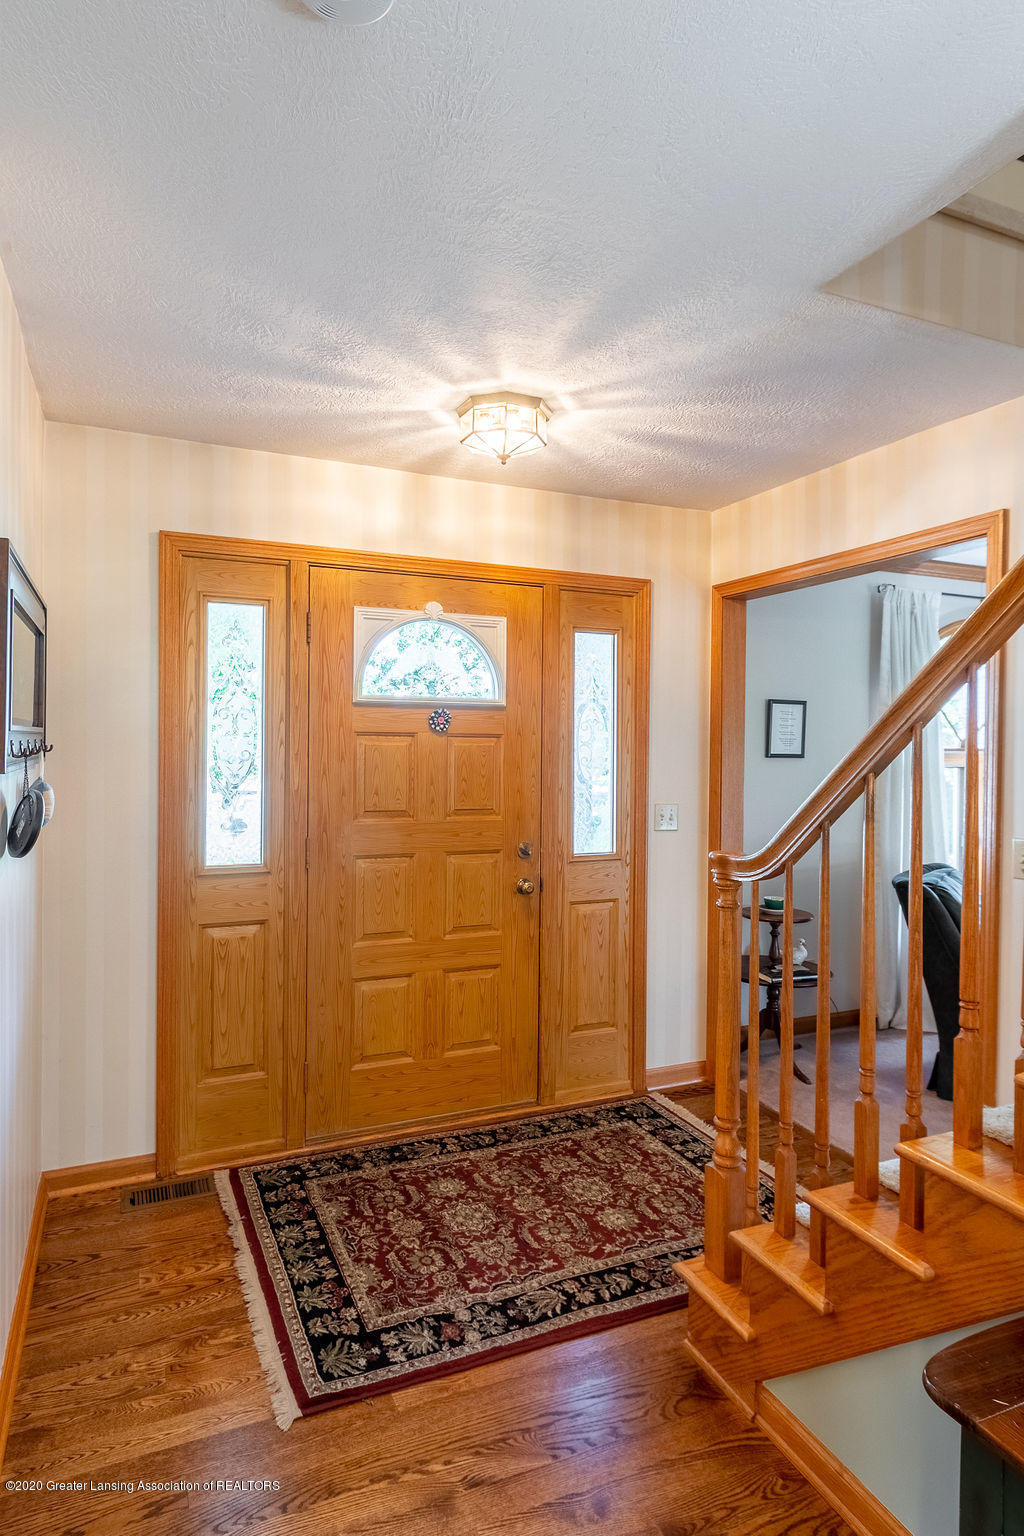 5856 Buttonwood Dr - 10 - 10